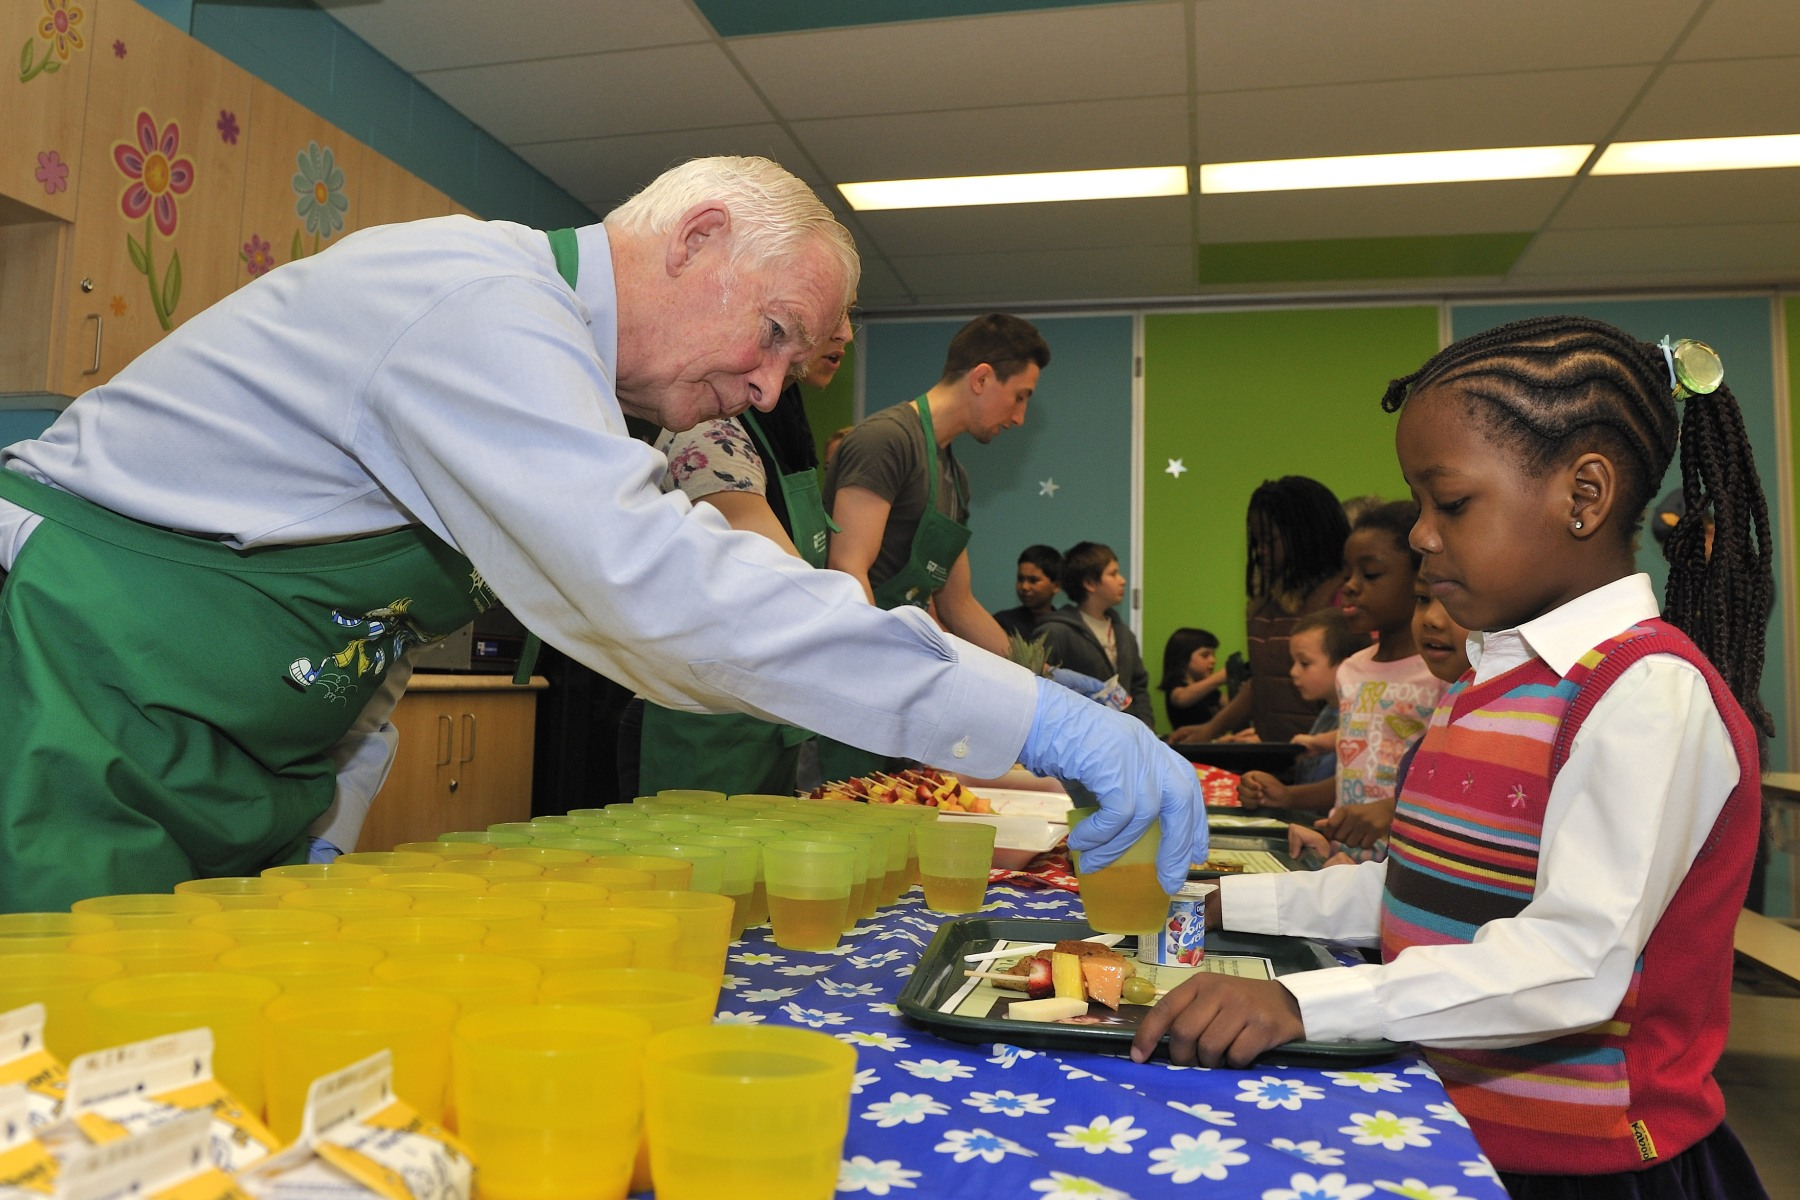 More than 100 students eat breakfast at Notre-Dame school every day.